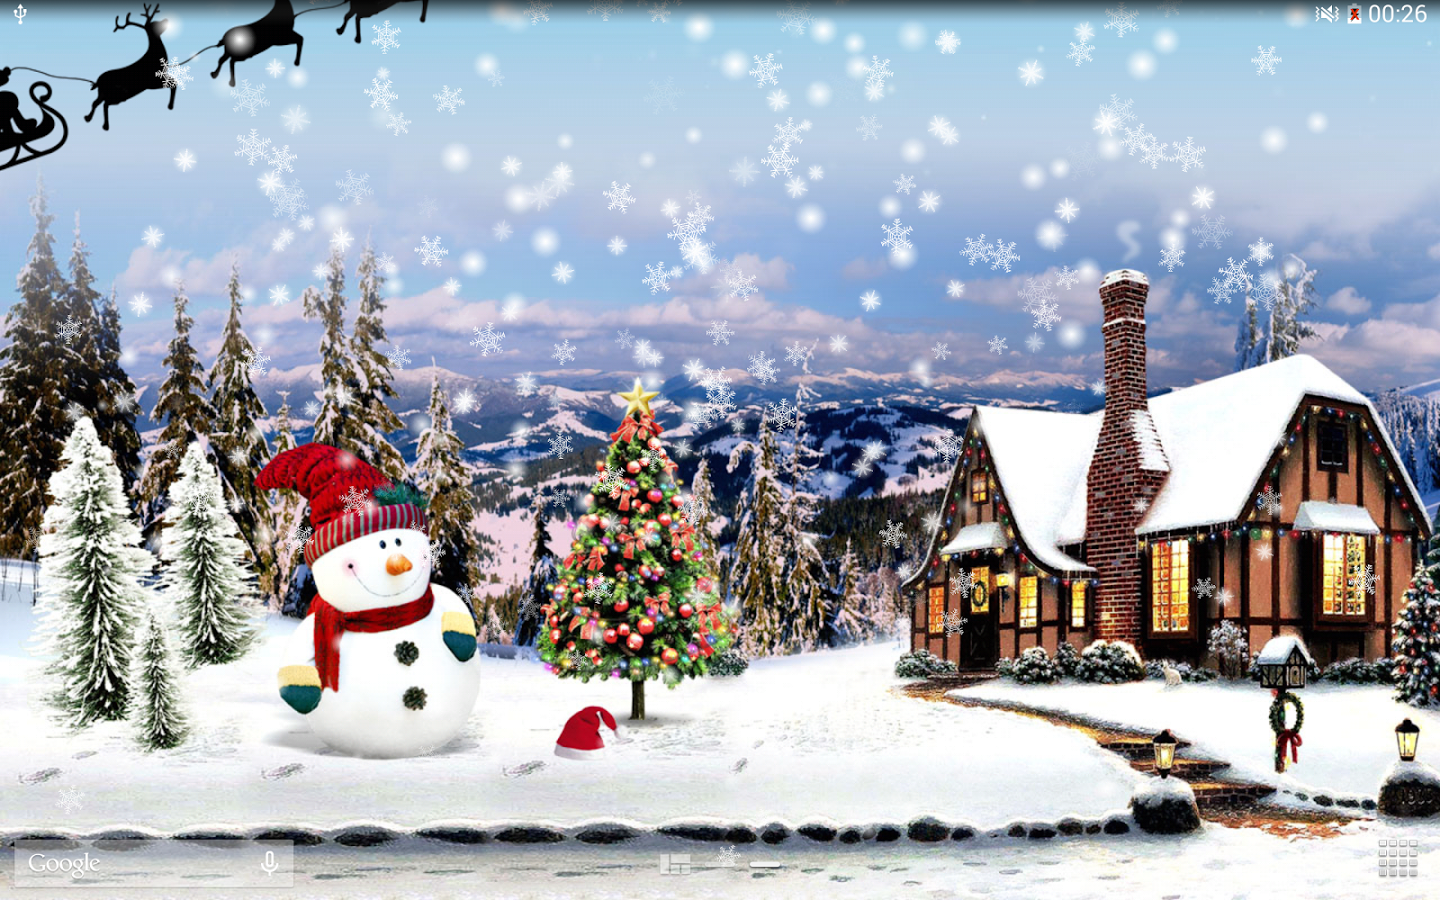 Top 10 free Christmas live wallpapers for Android